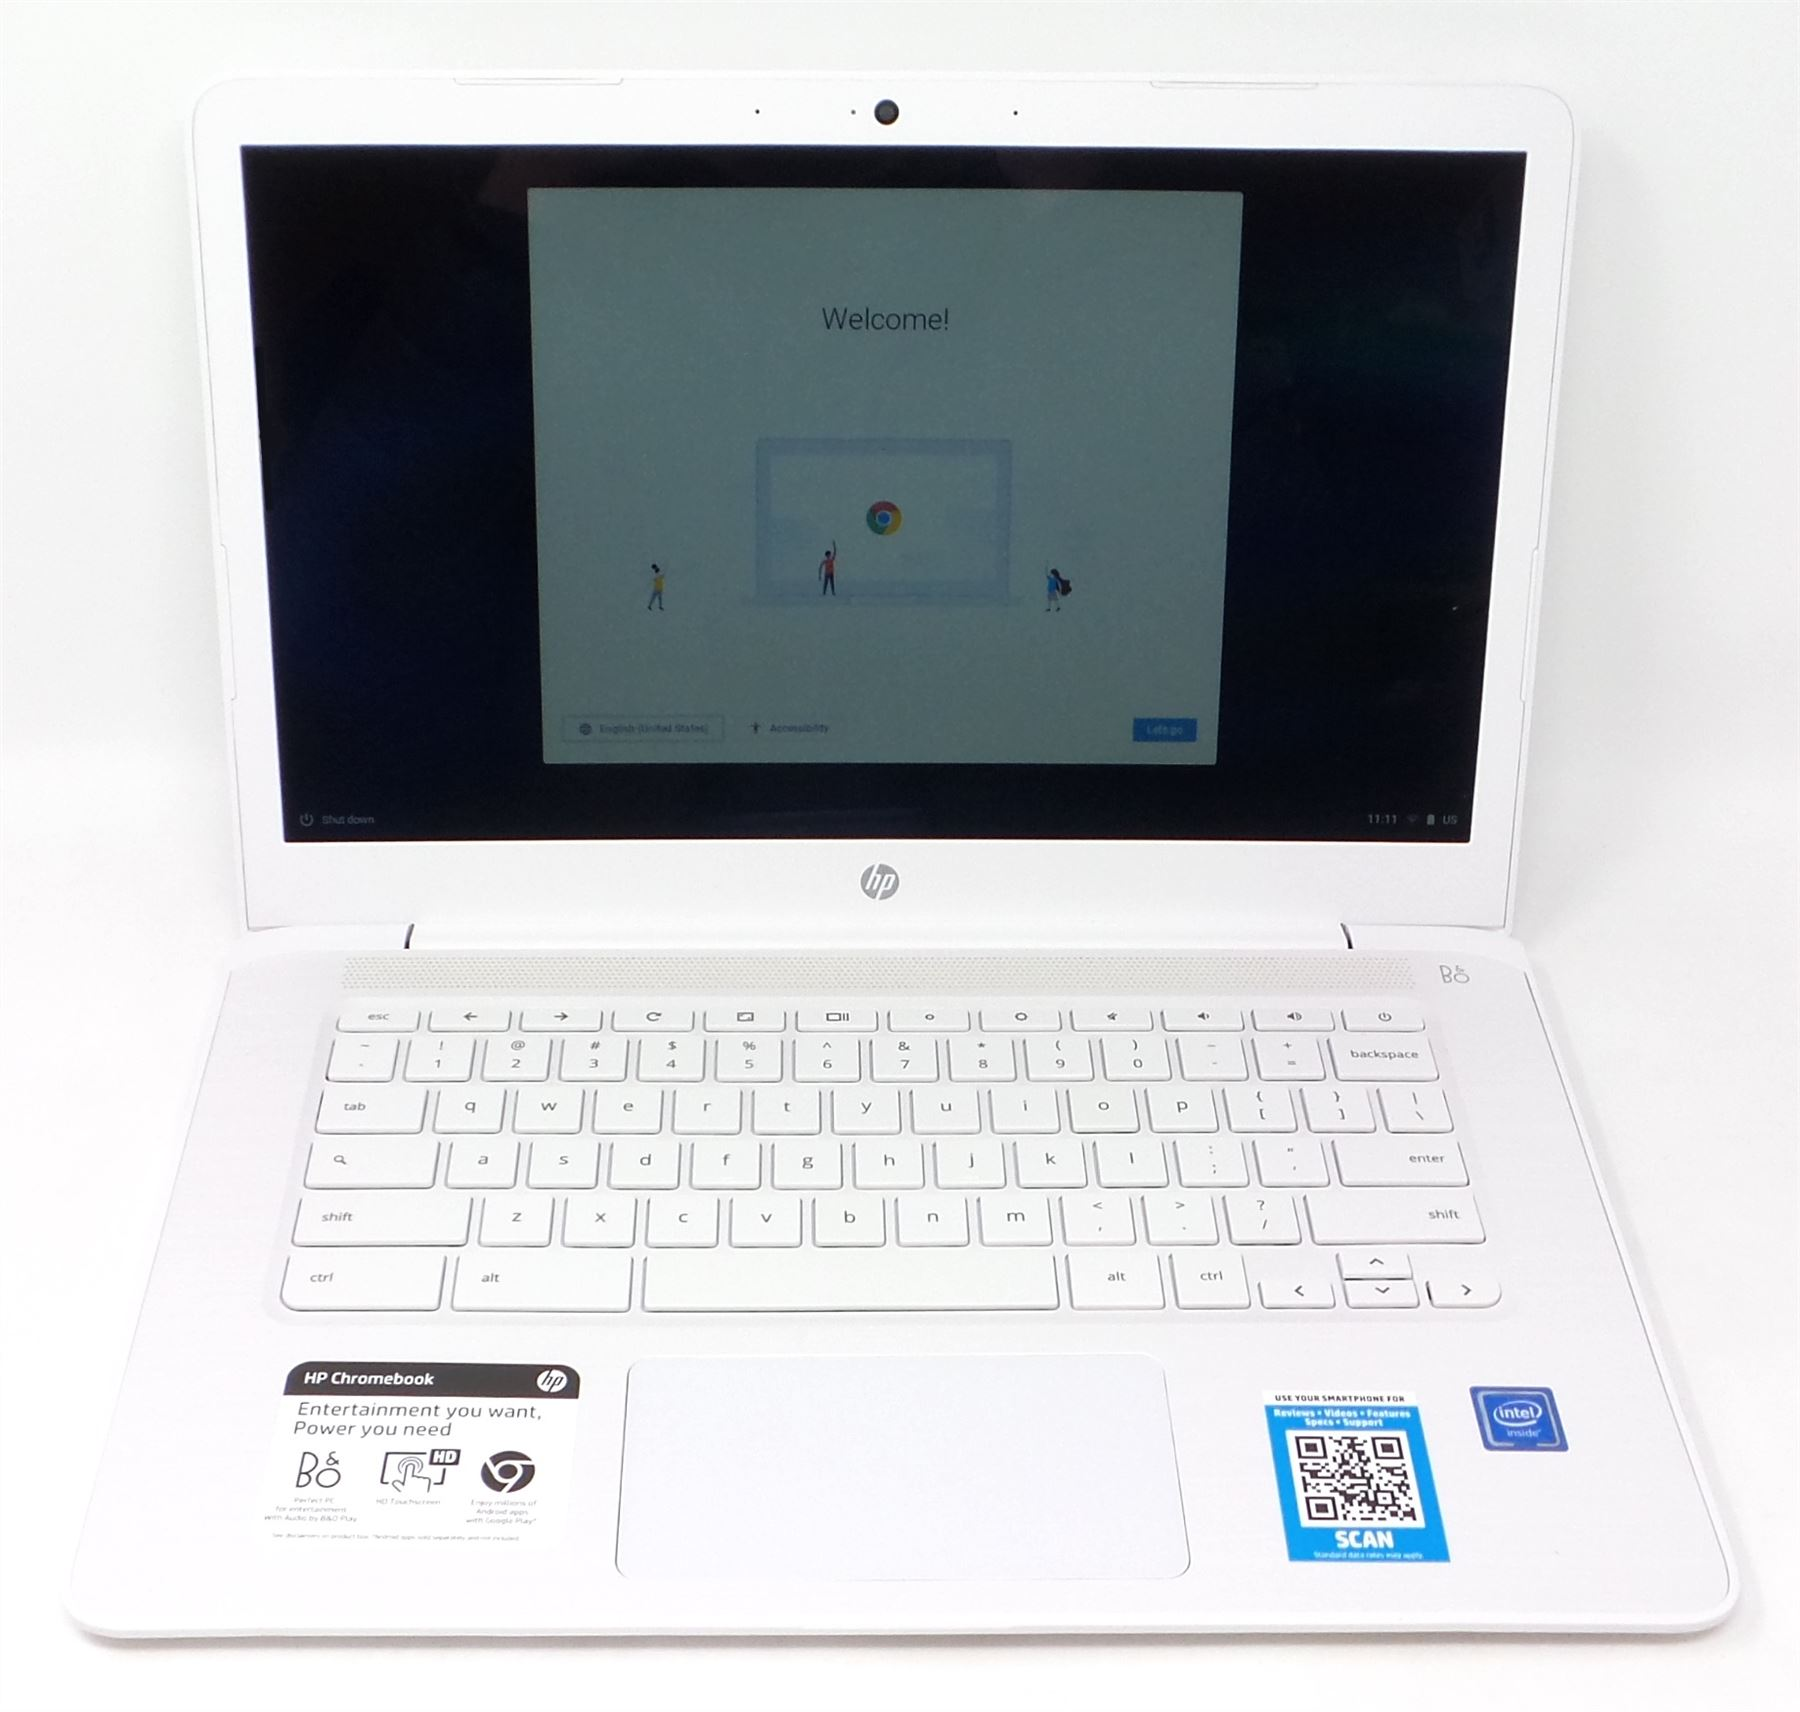 Hp Scan For Chromebook